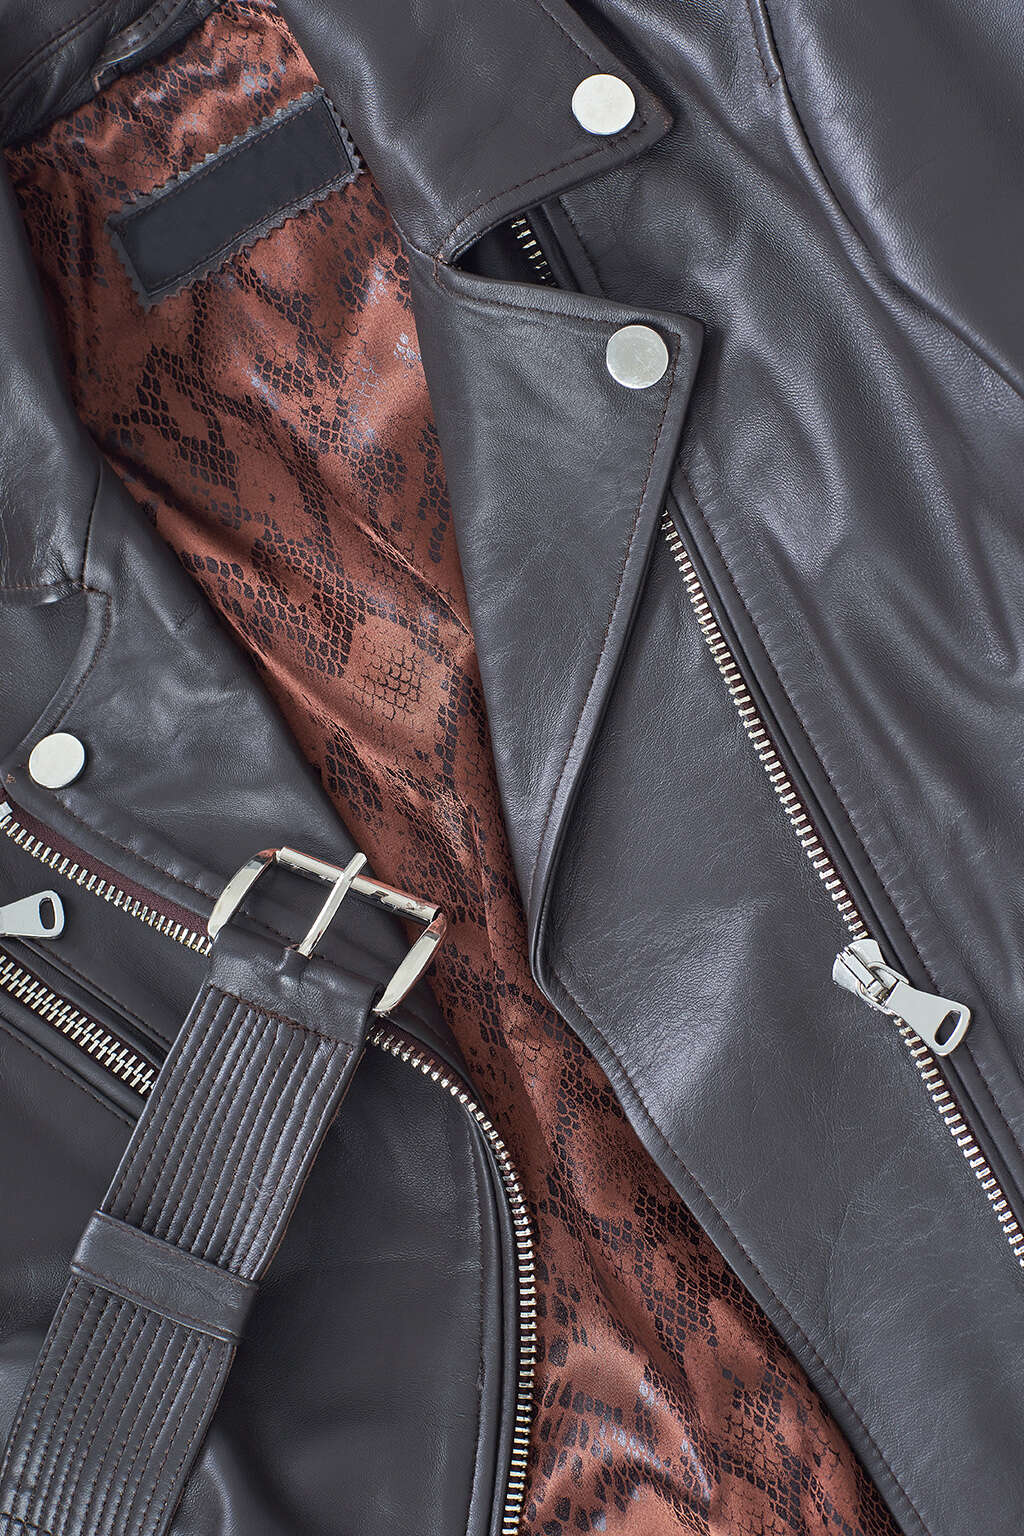 Buckle and Inner Lining Detail of Matte Black Leather Biker Jacket with Buckle